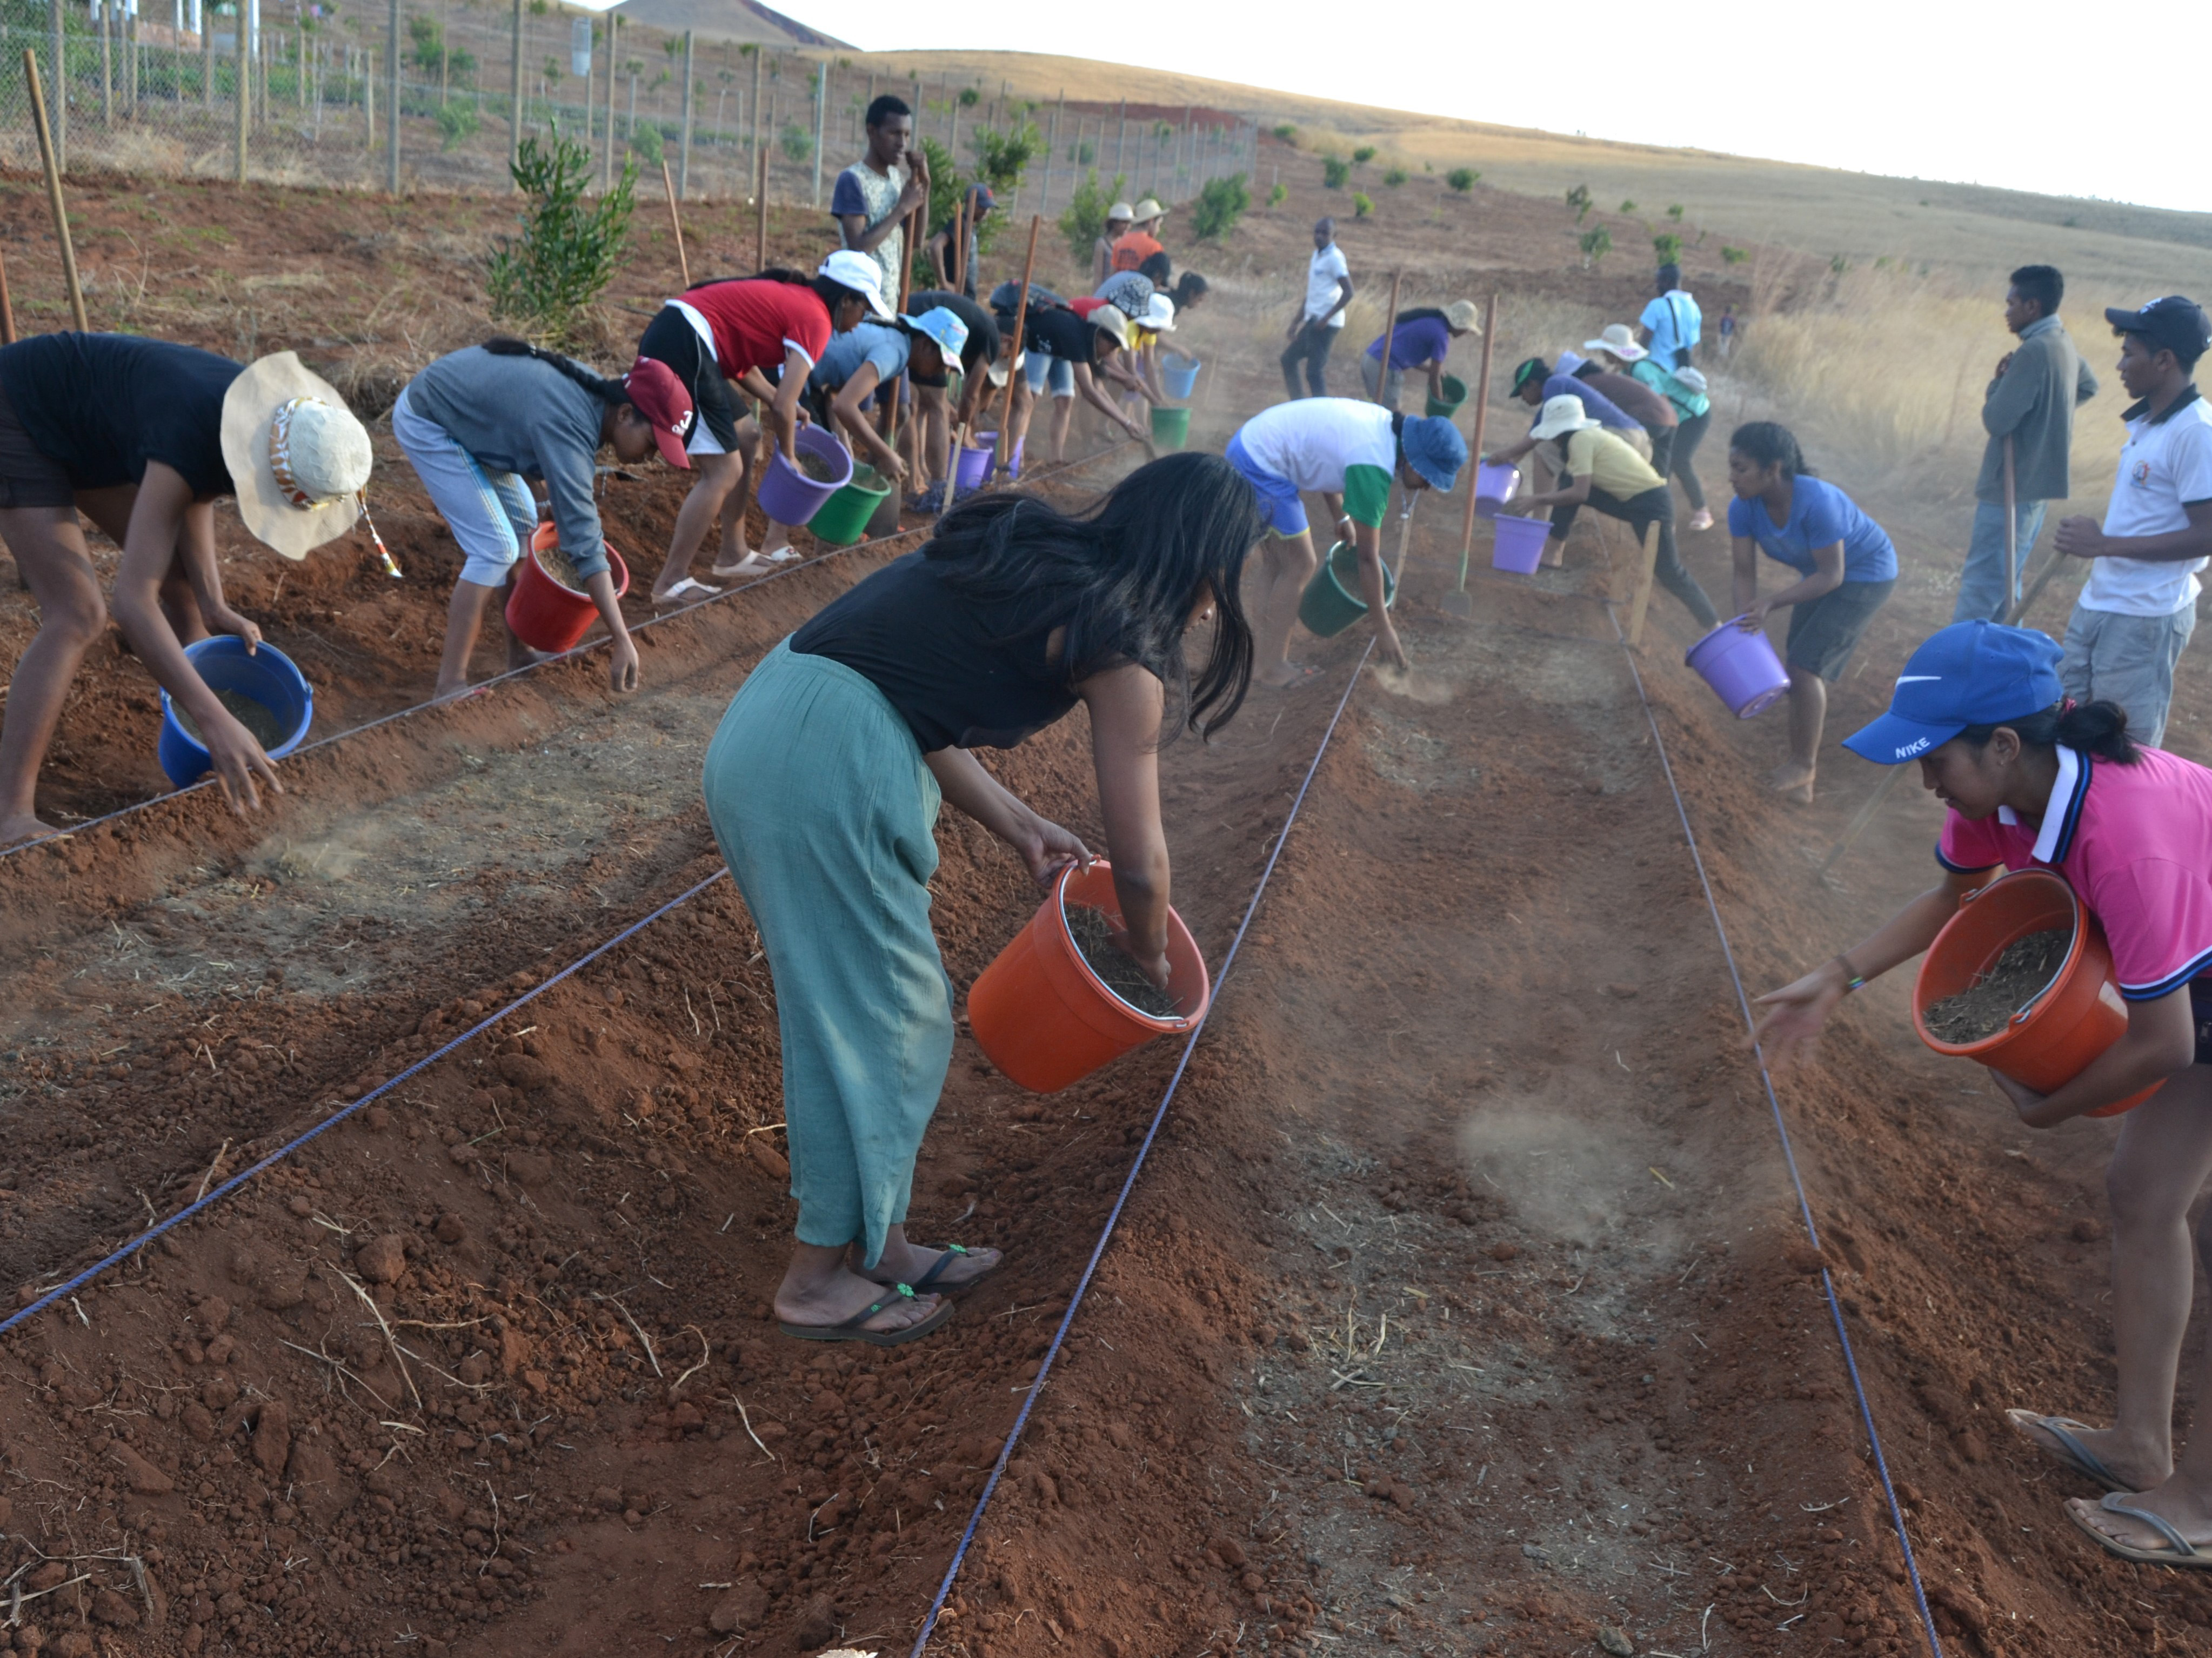 Agronomy students from the FJKM University preparing a vegetable garden at the fruit center.